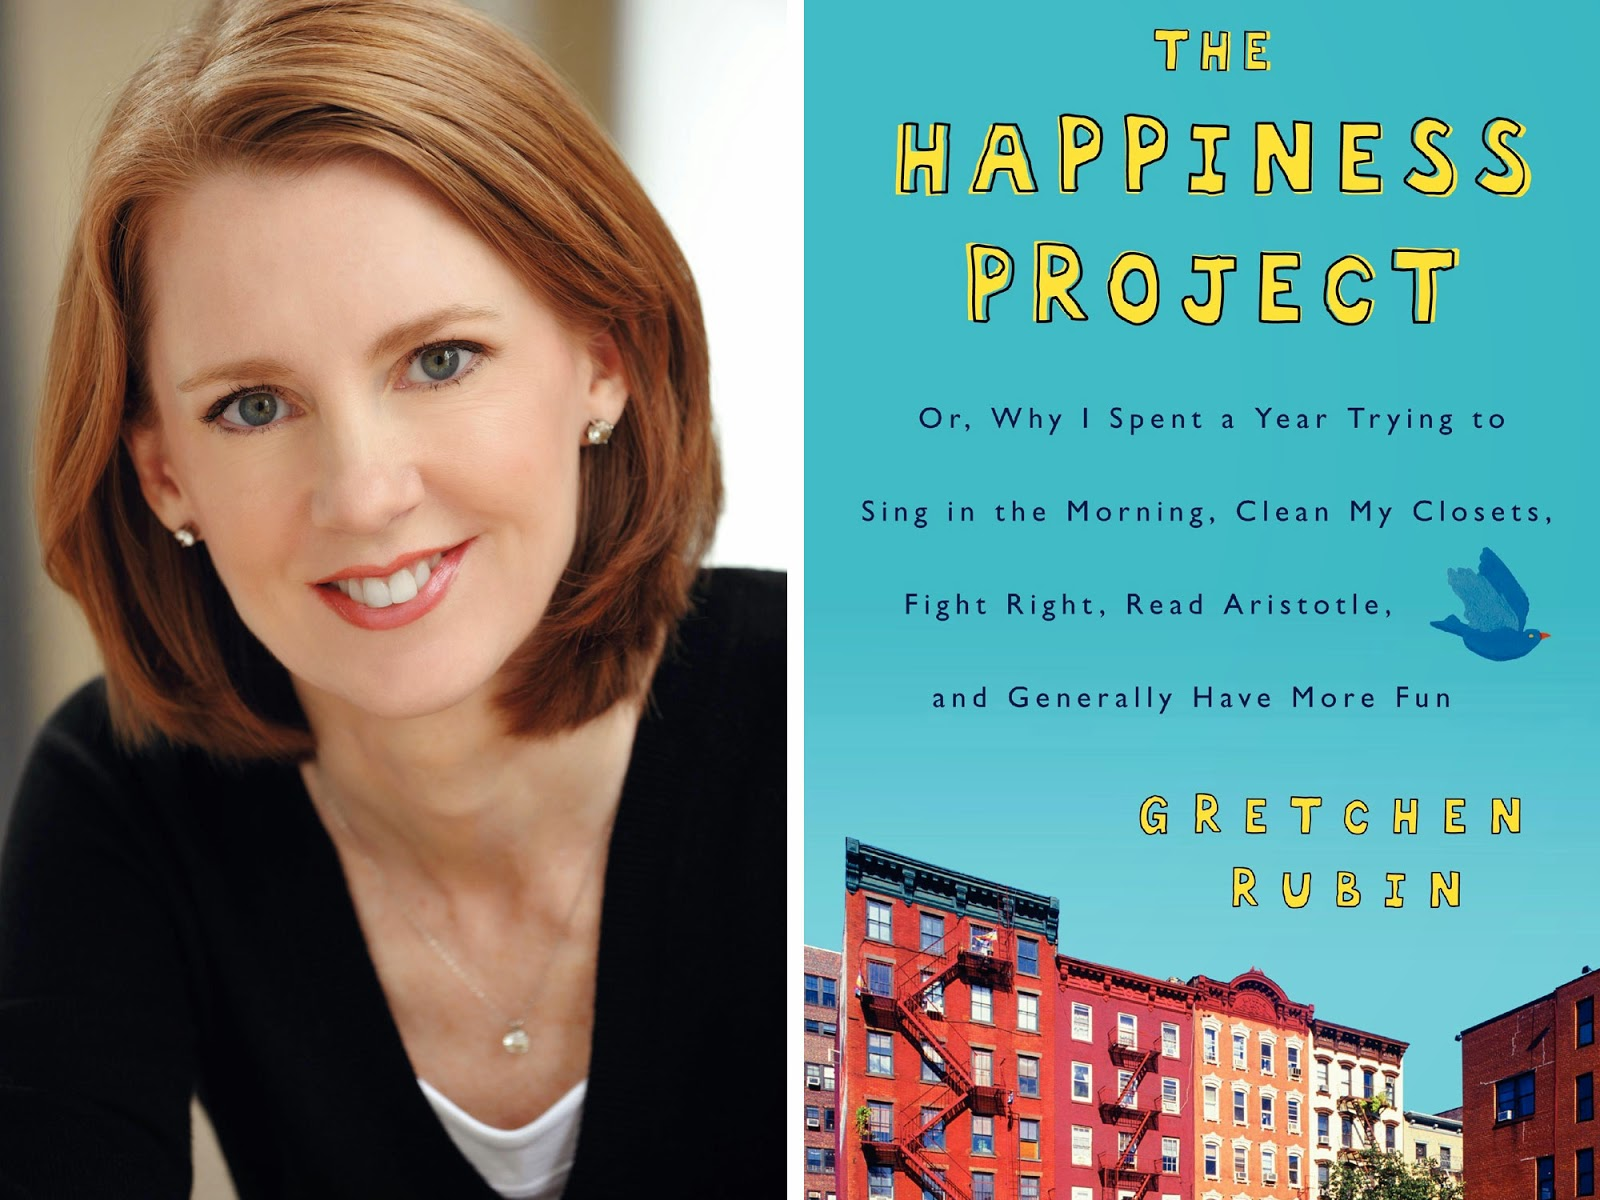 the happiness project by gretchen rubin Gretchen craft rubin is an american author, blogger and speaker she is author of the best selling the happiness project: or why i spent a year trying to sing in the.